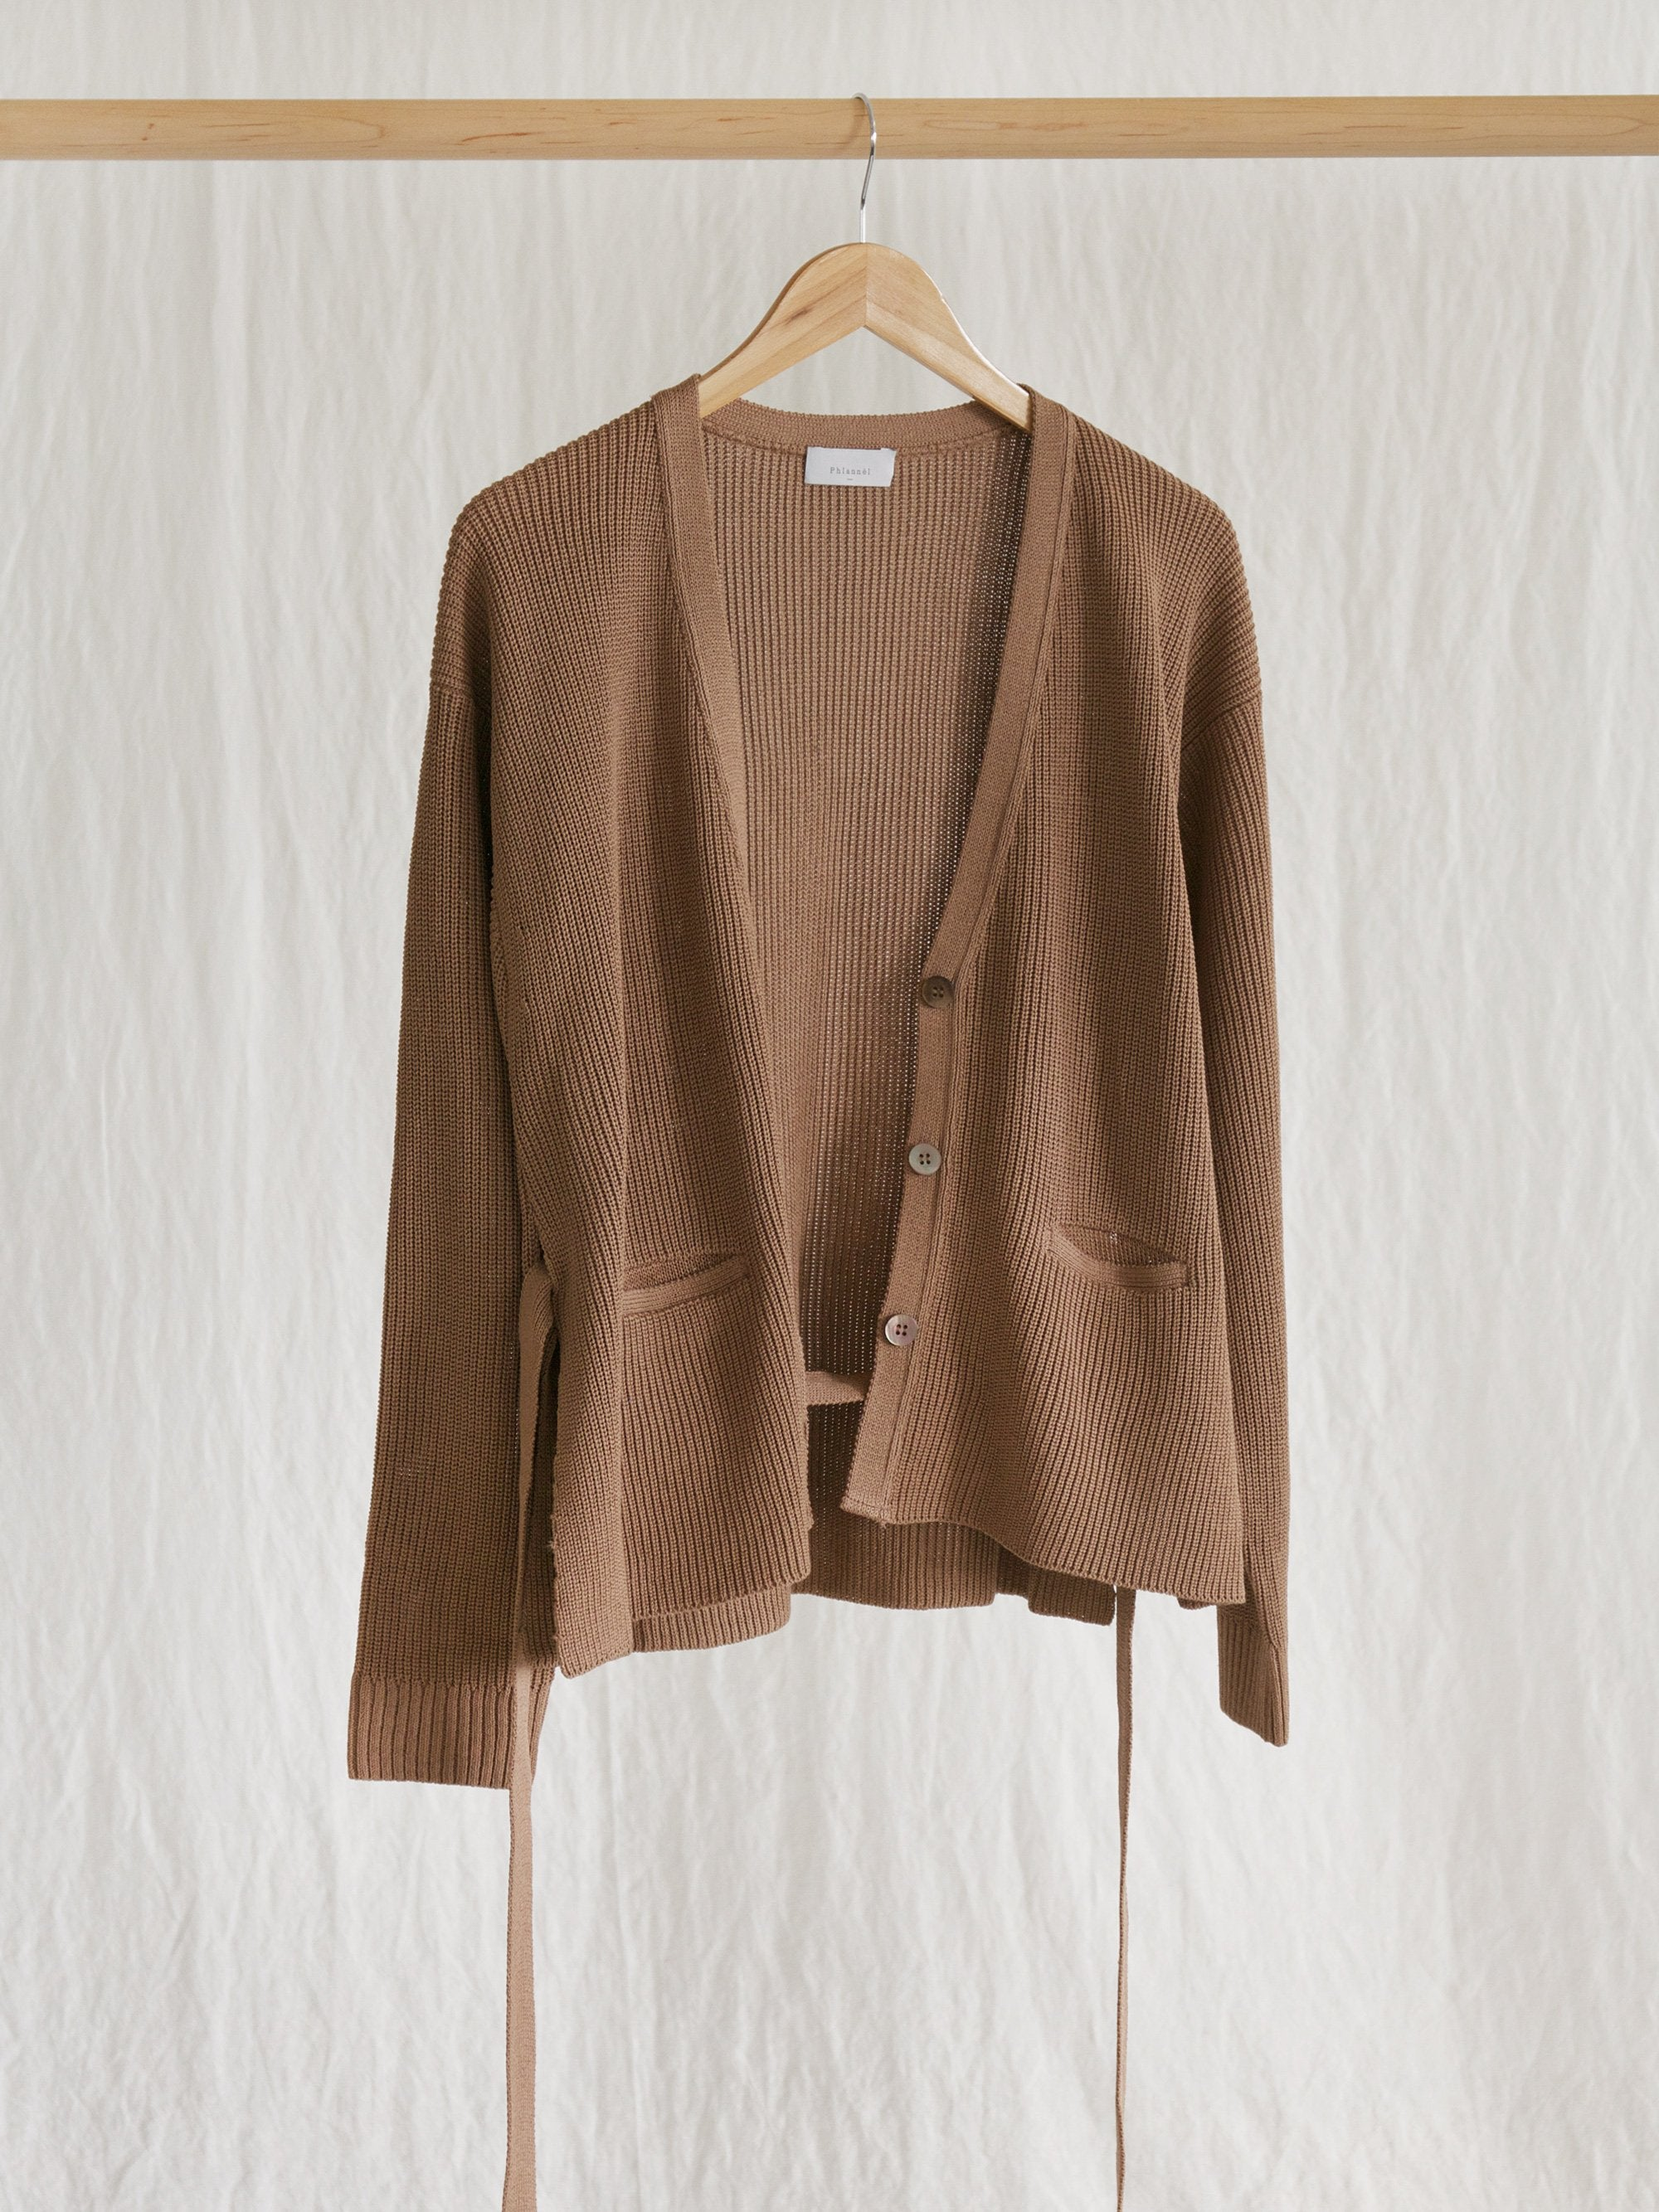 Namu Shop - Phlannel Washi Silk Belted Knit Cardigan - Almond